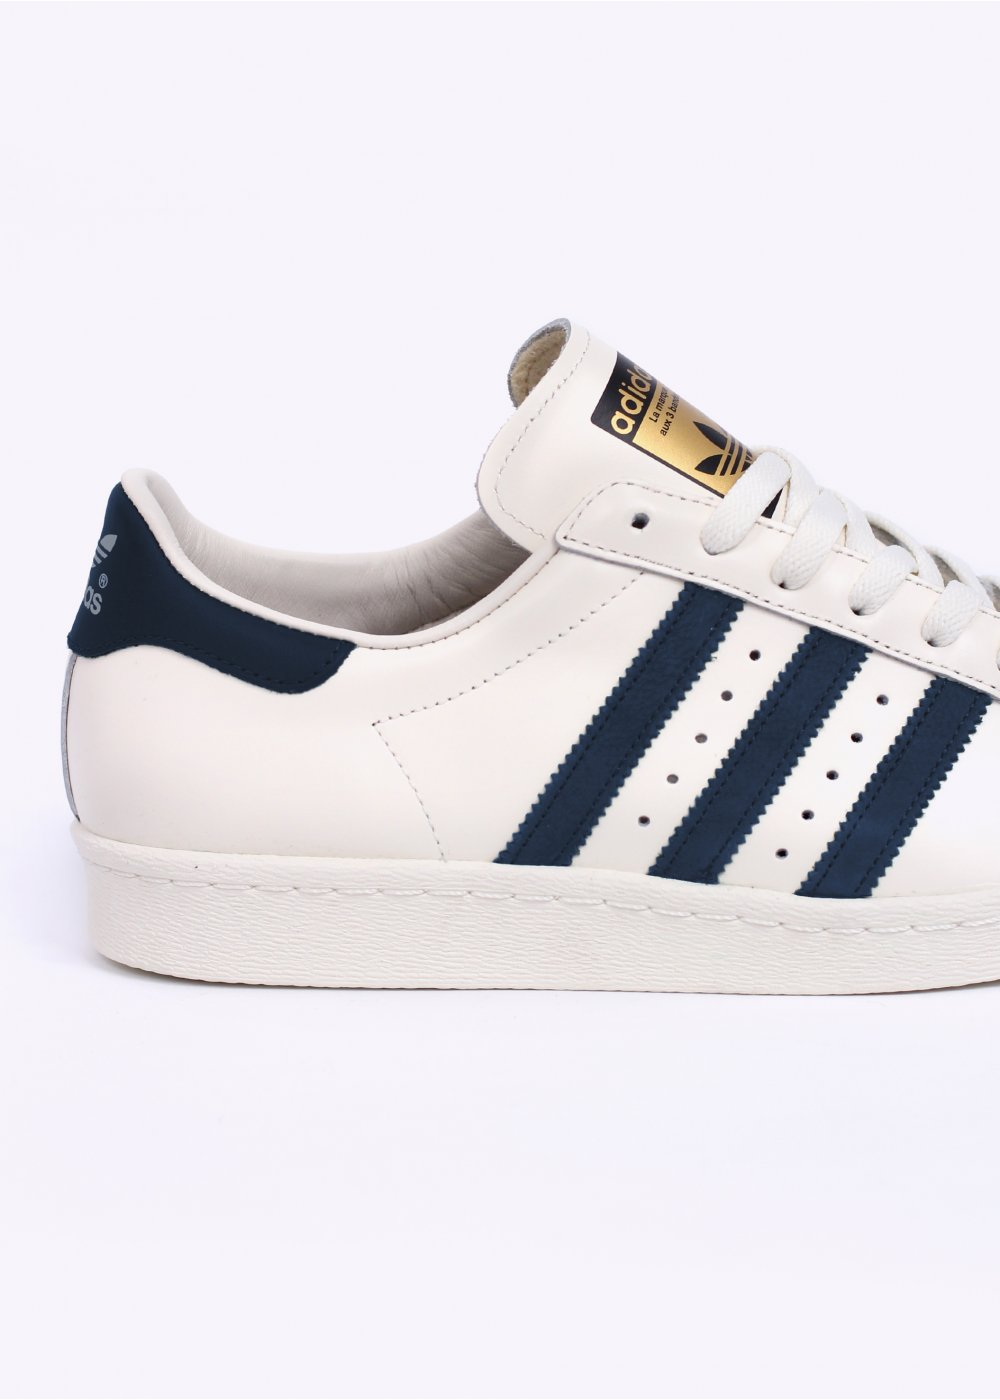 Adidas Originals White And Navy